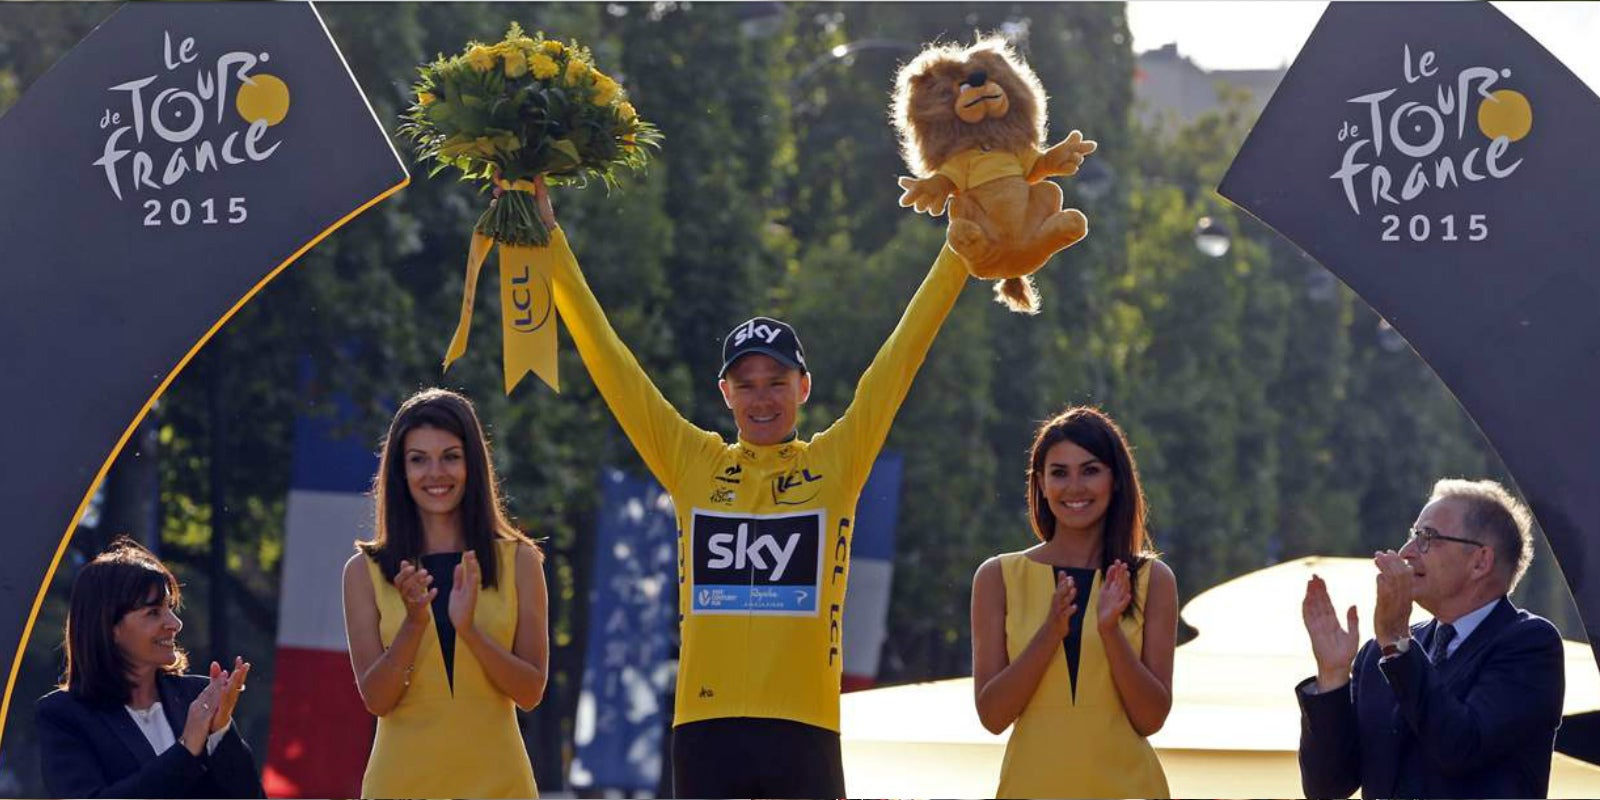 2015 tour de france chris froome victory overall gc maillot jaune